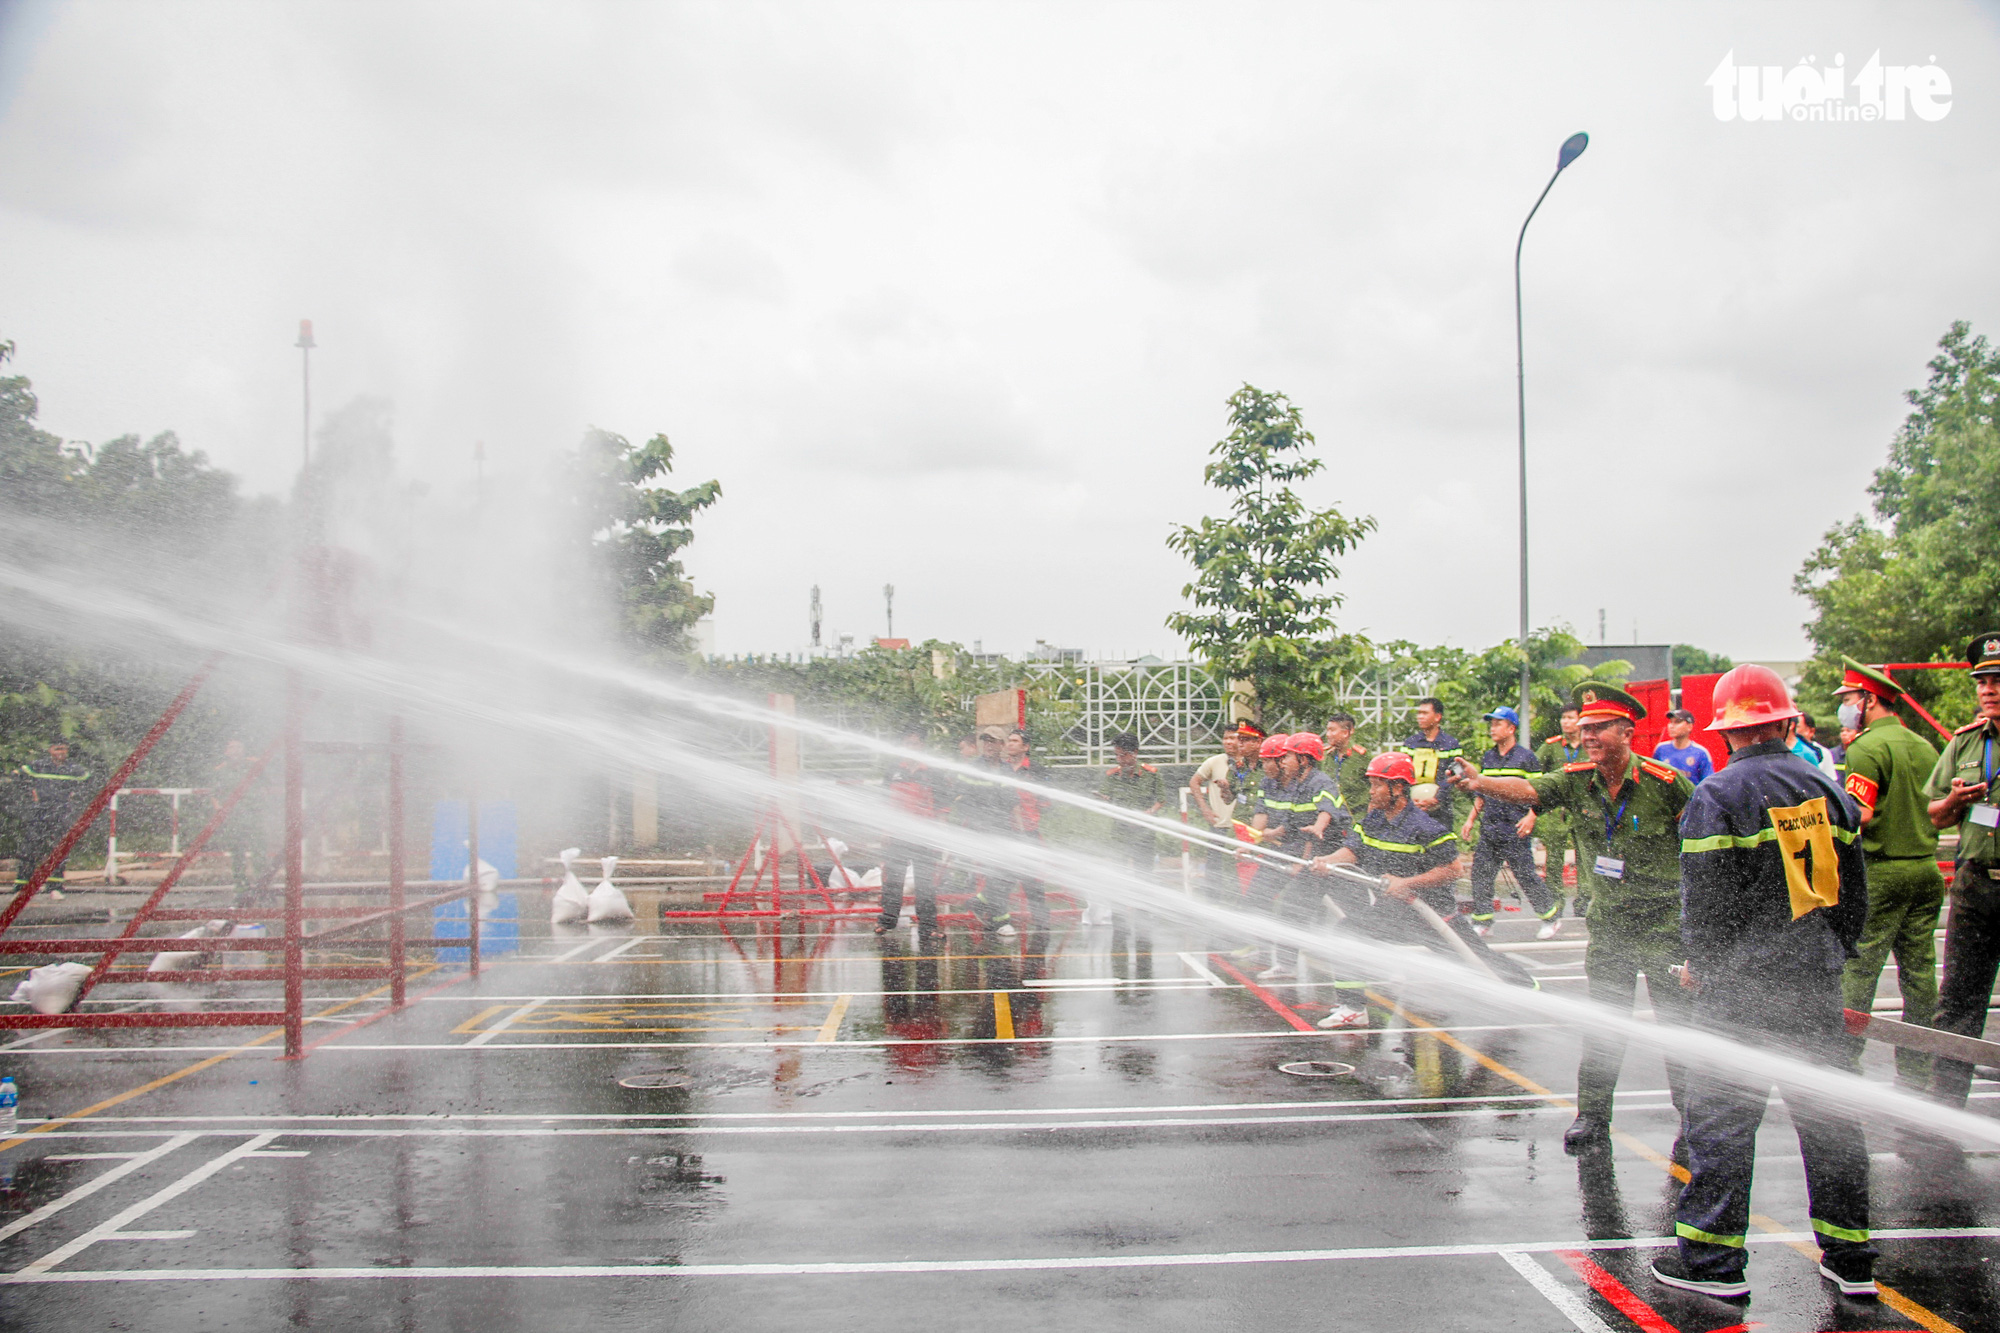 Firefighters use water hoses to put out fire during a firefighting and rescue competition in Ho Chi Minh City, June 16, 2020. Photo: Chau Tuan / Tuoi Tre